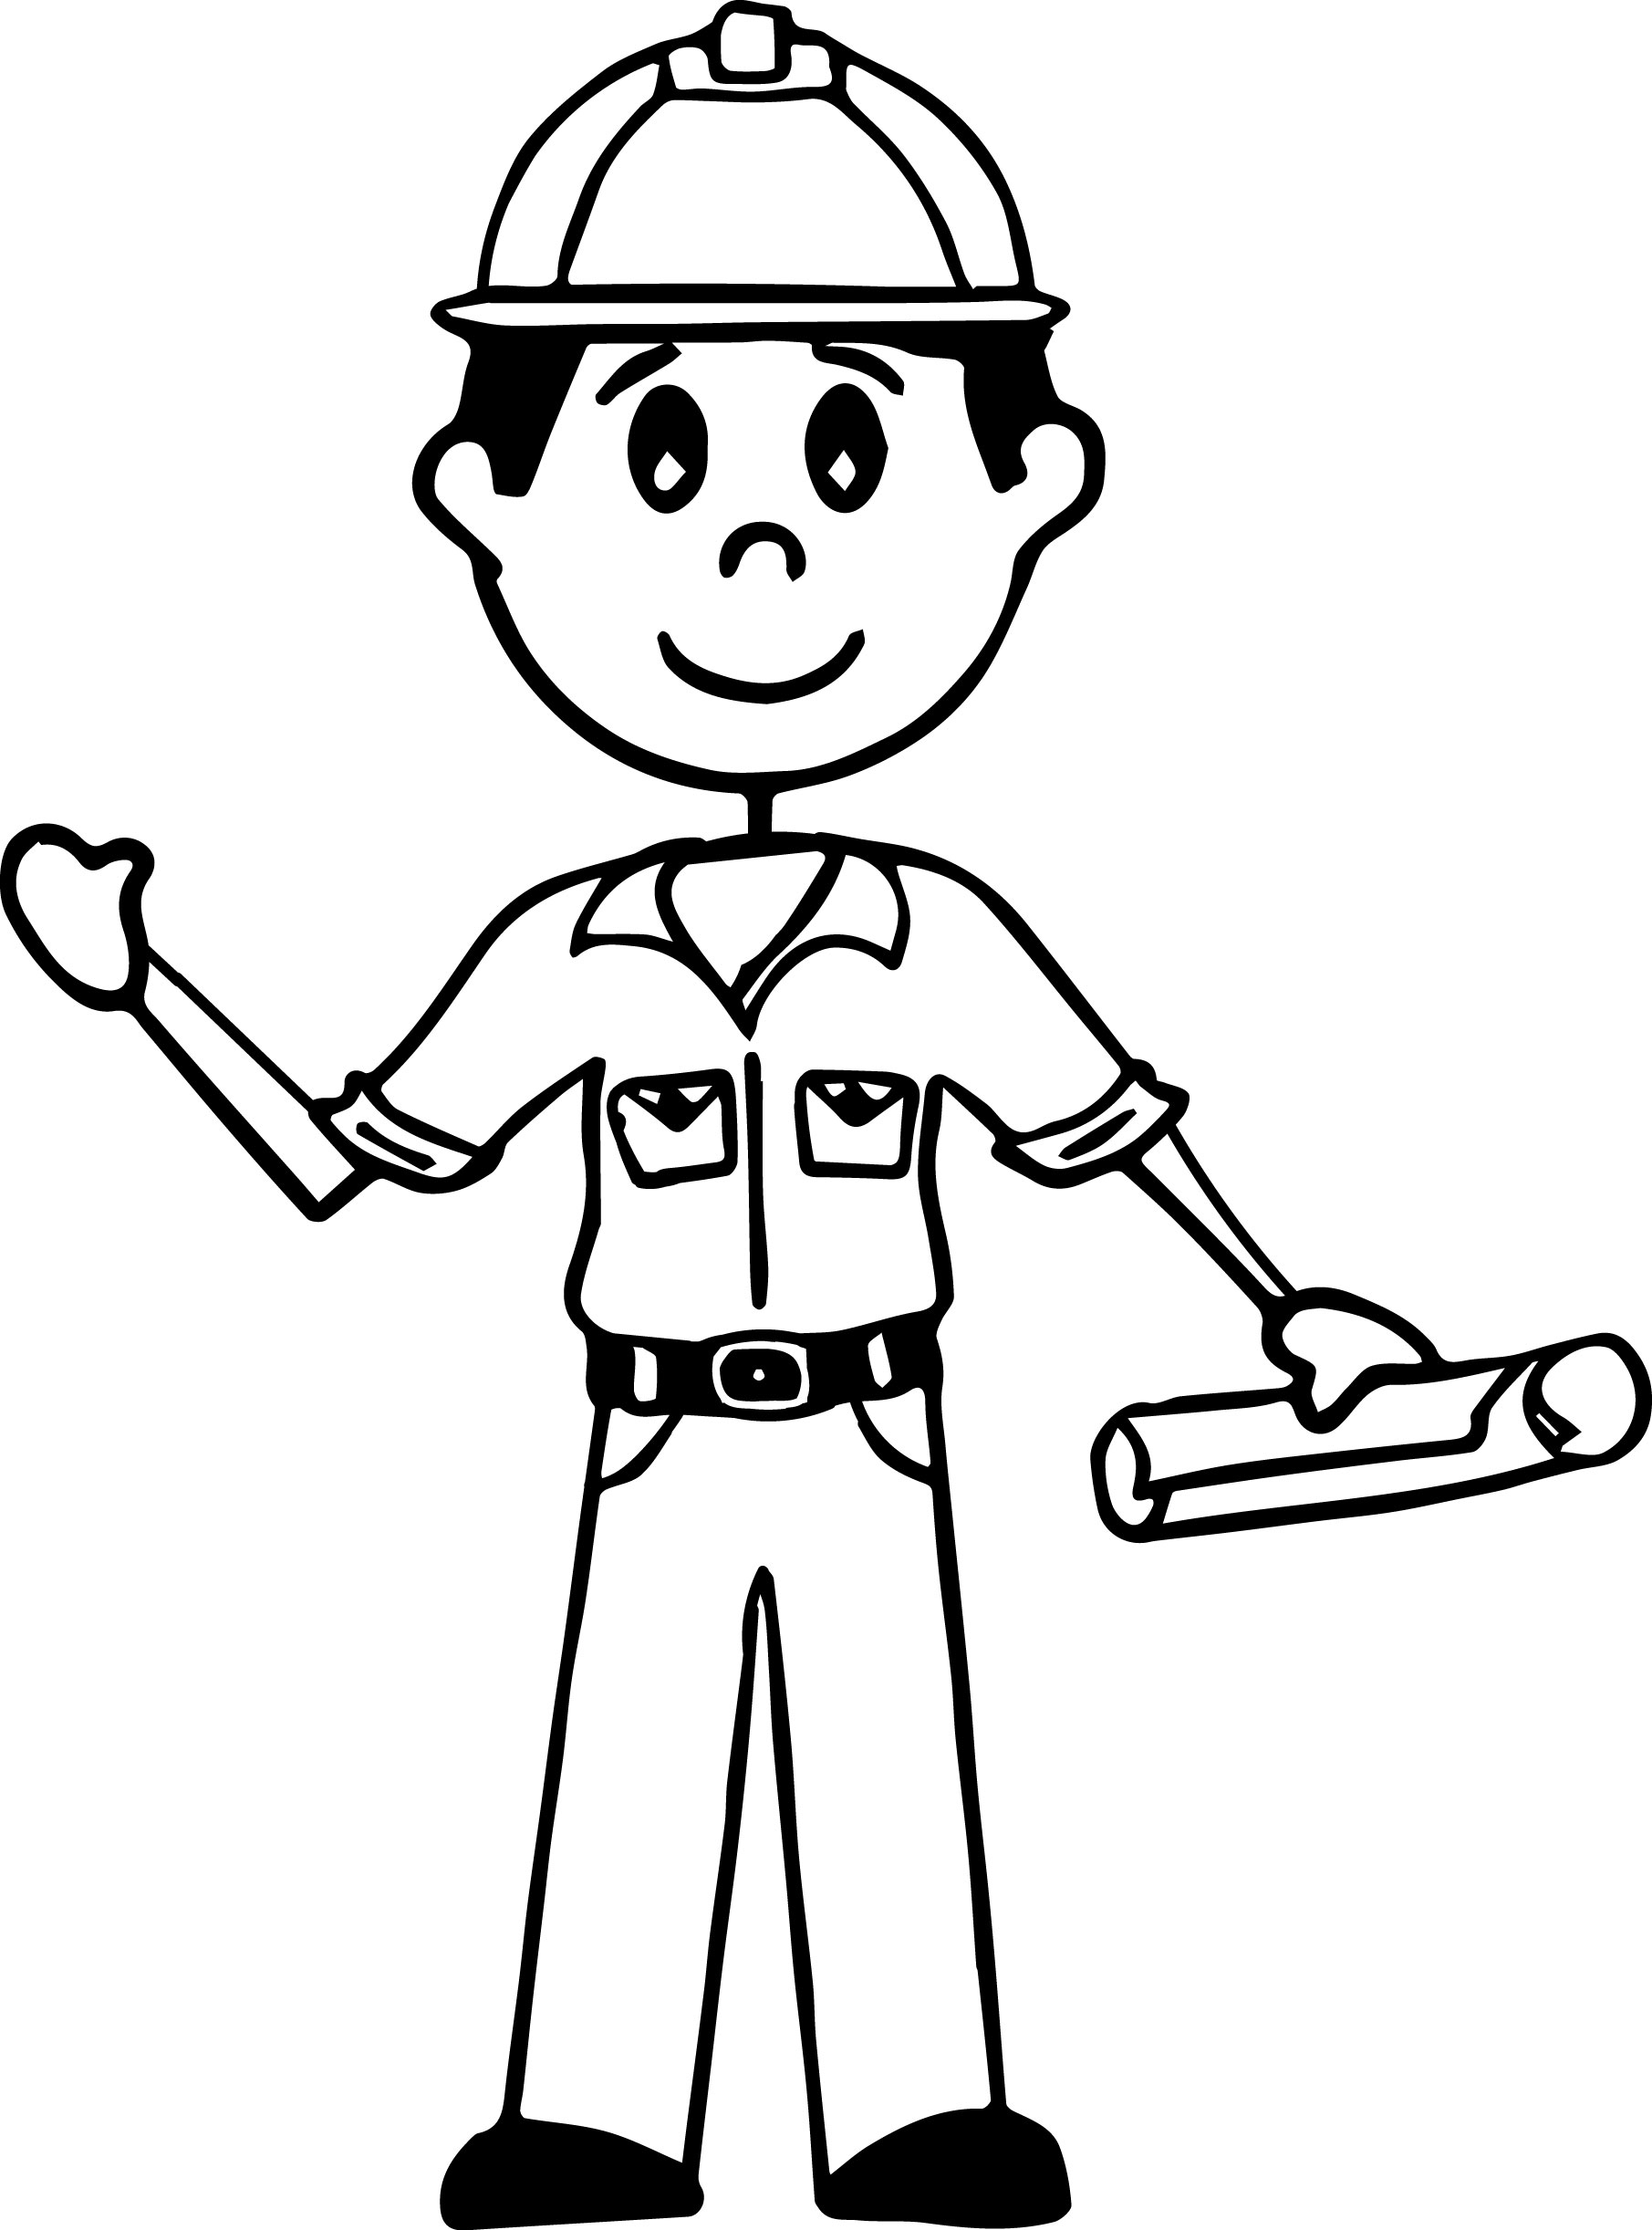 coloring picture people stick people coloring pages at getcoloringscom free coloring picture people